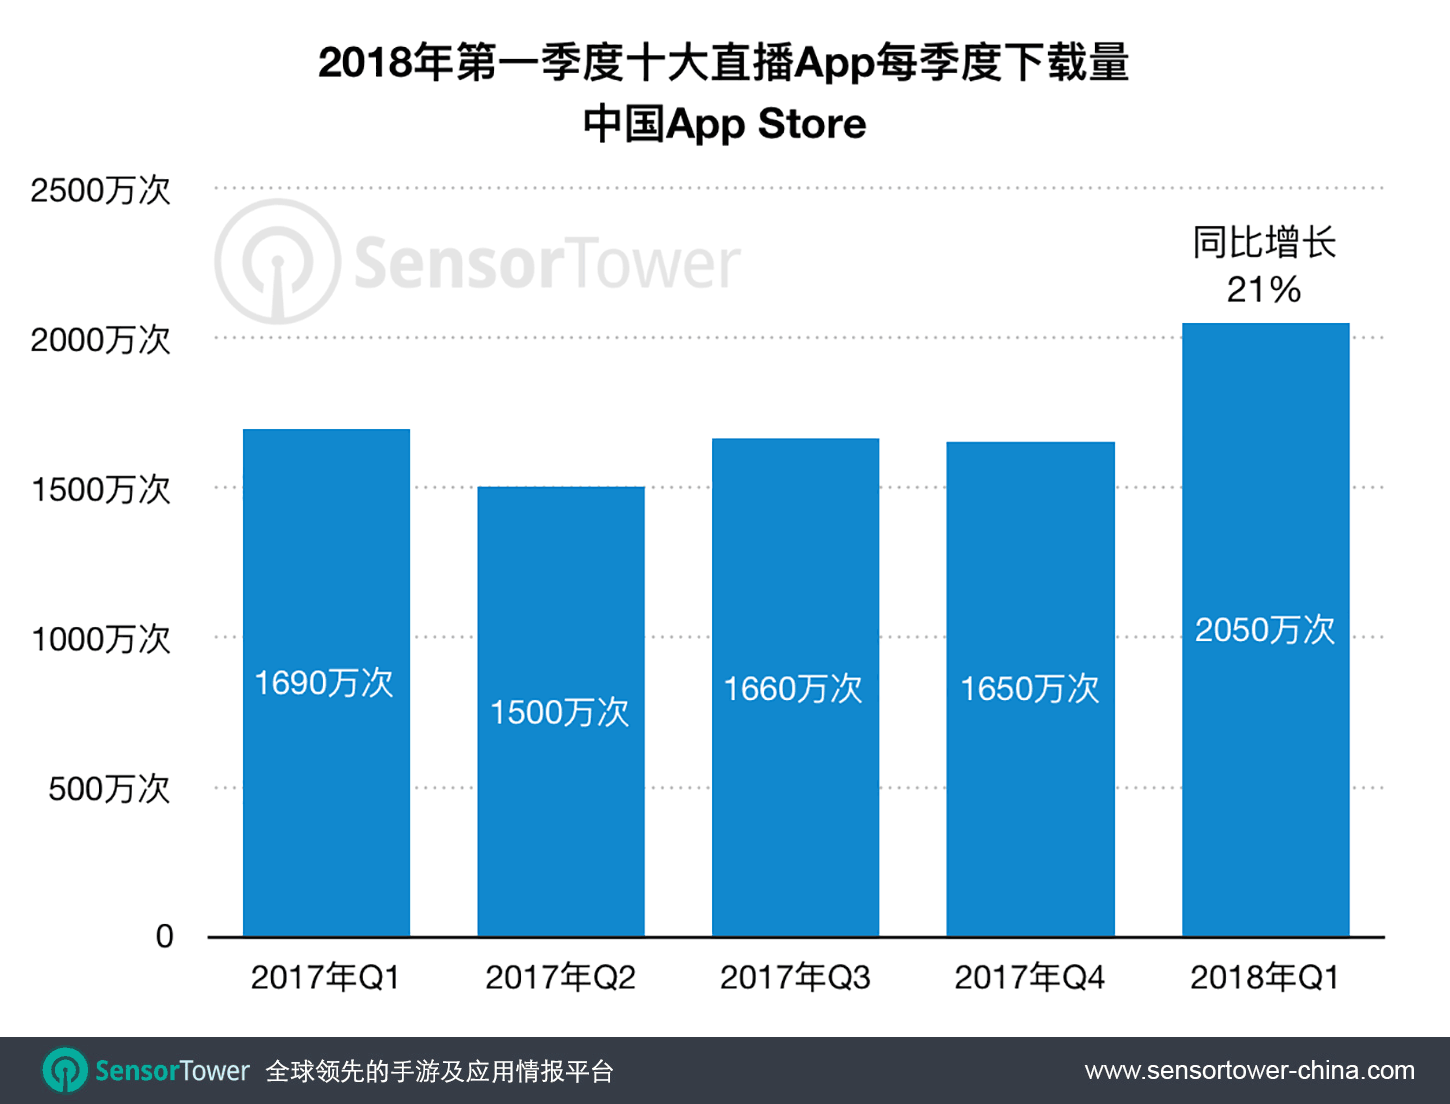 China's Top 10 Live Streaming Apps 1Q17 to 1Q18 QoQ Download Trend